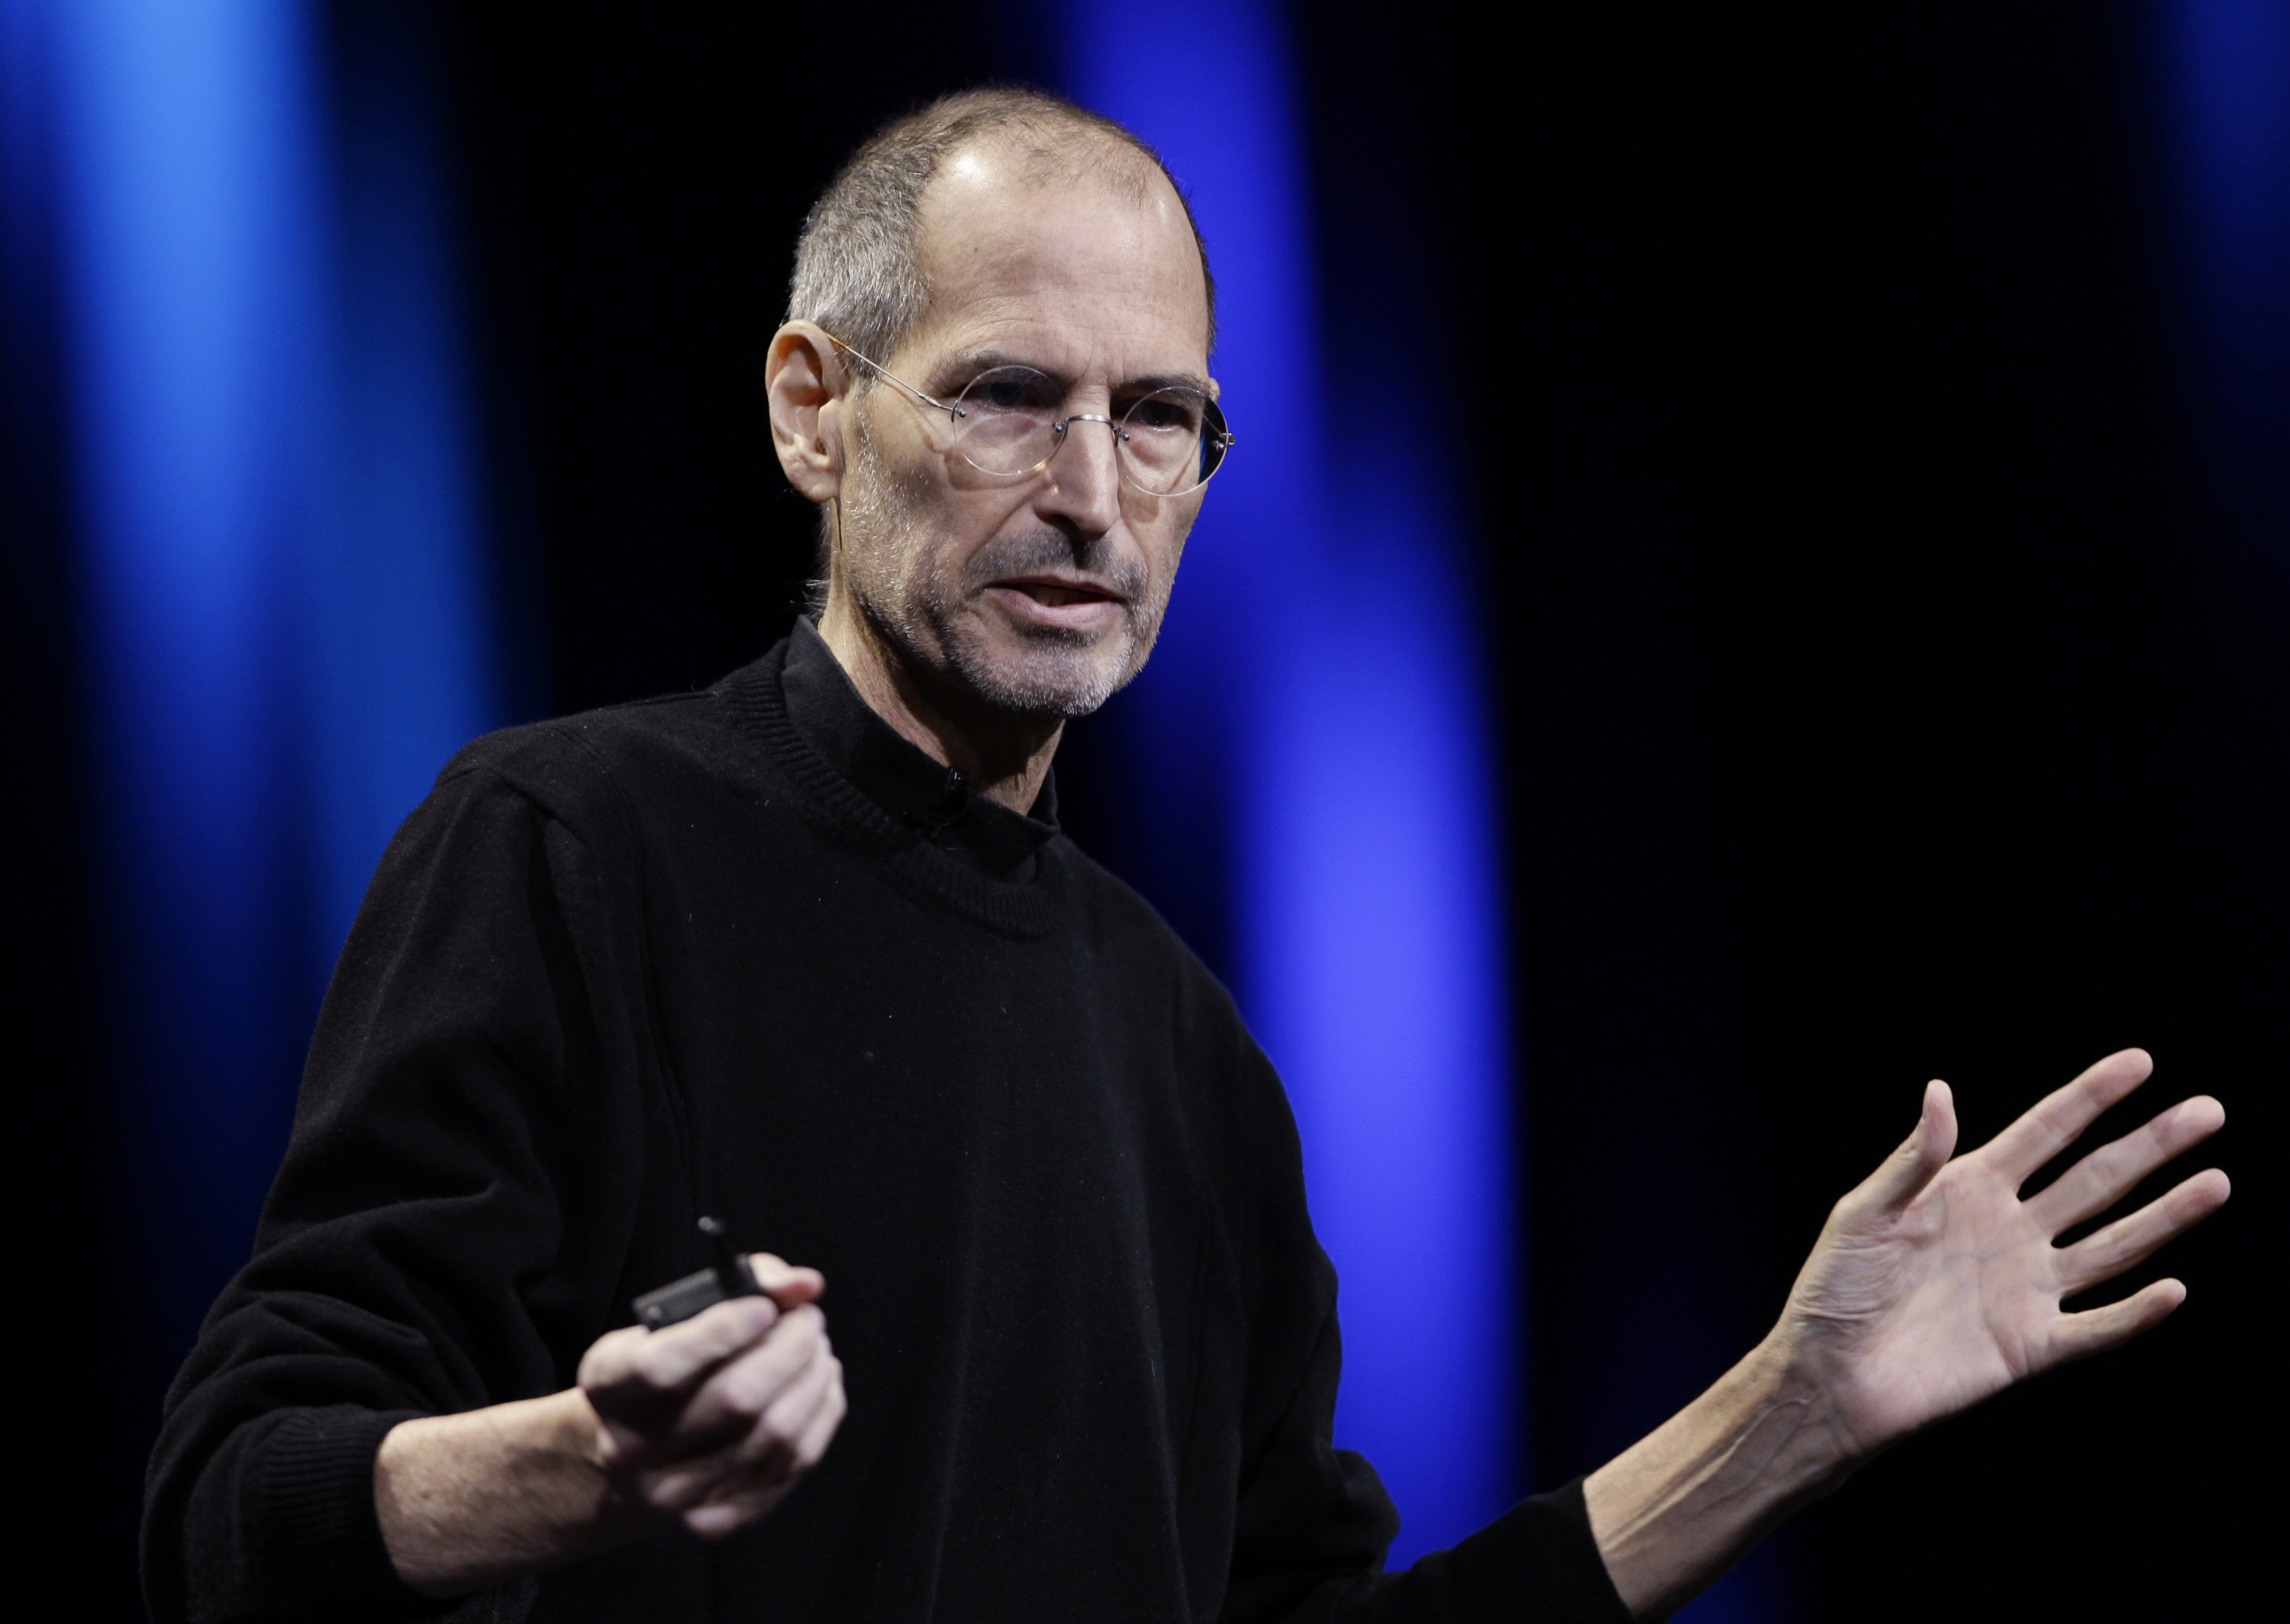 Steve Jobs during a keynote address to the Apple Worldwide Developers Conference in San Francisco on June 6, 2011.